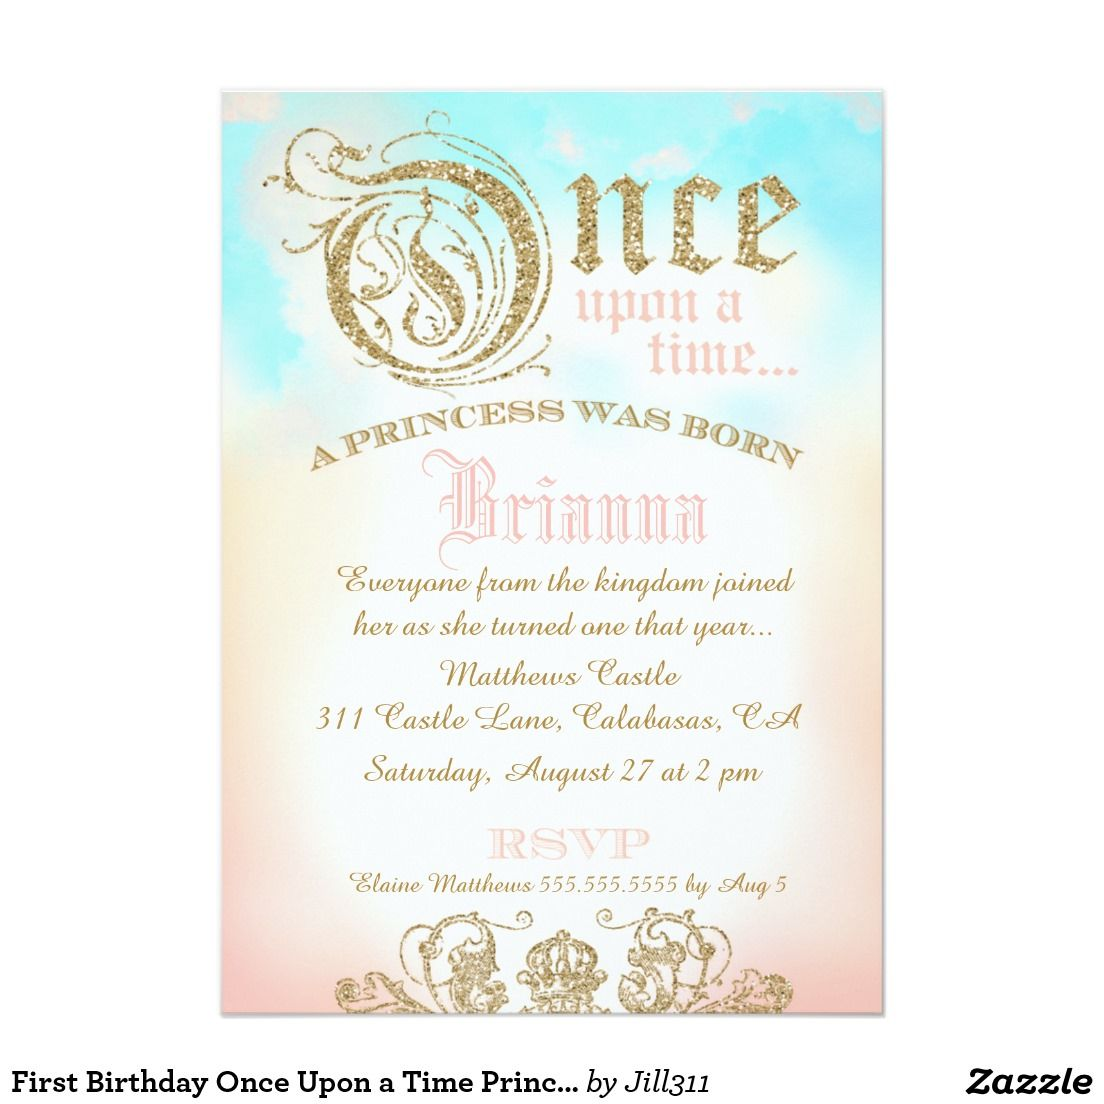 First Birthday Once Upon a Time Princess Invitation | First birthday ...